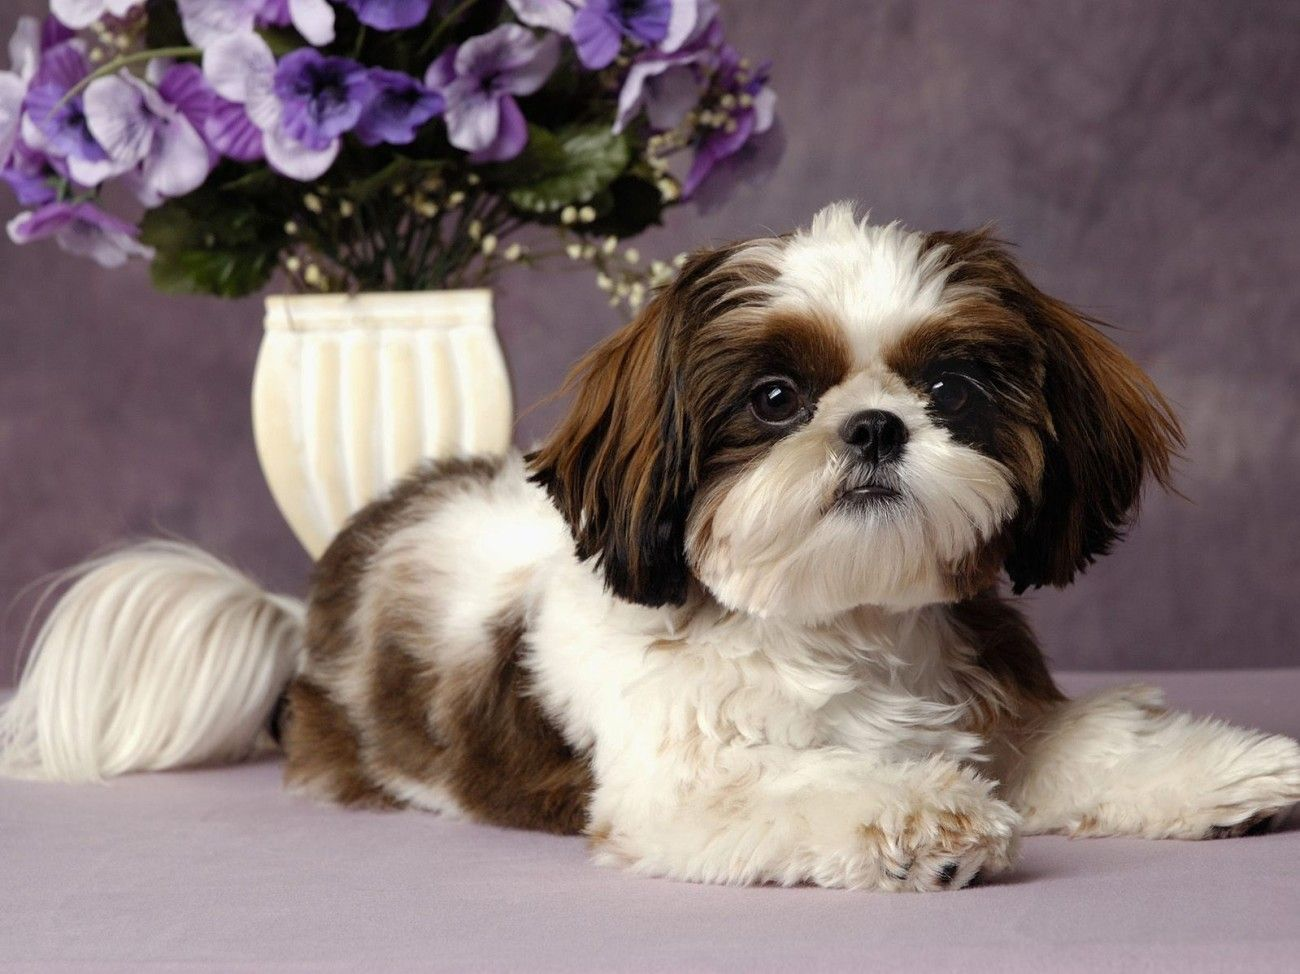 shih tzu wallpaper  Free Shih Tzu Desktop Wallpaper | Shih Tzu Puppies Wallpaper For ...